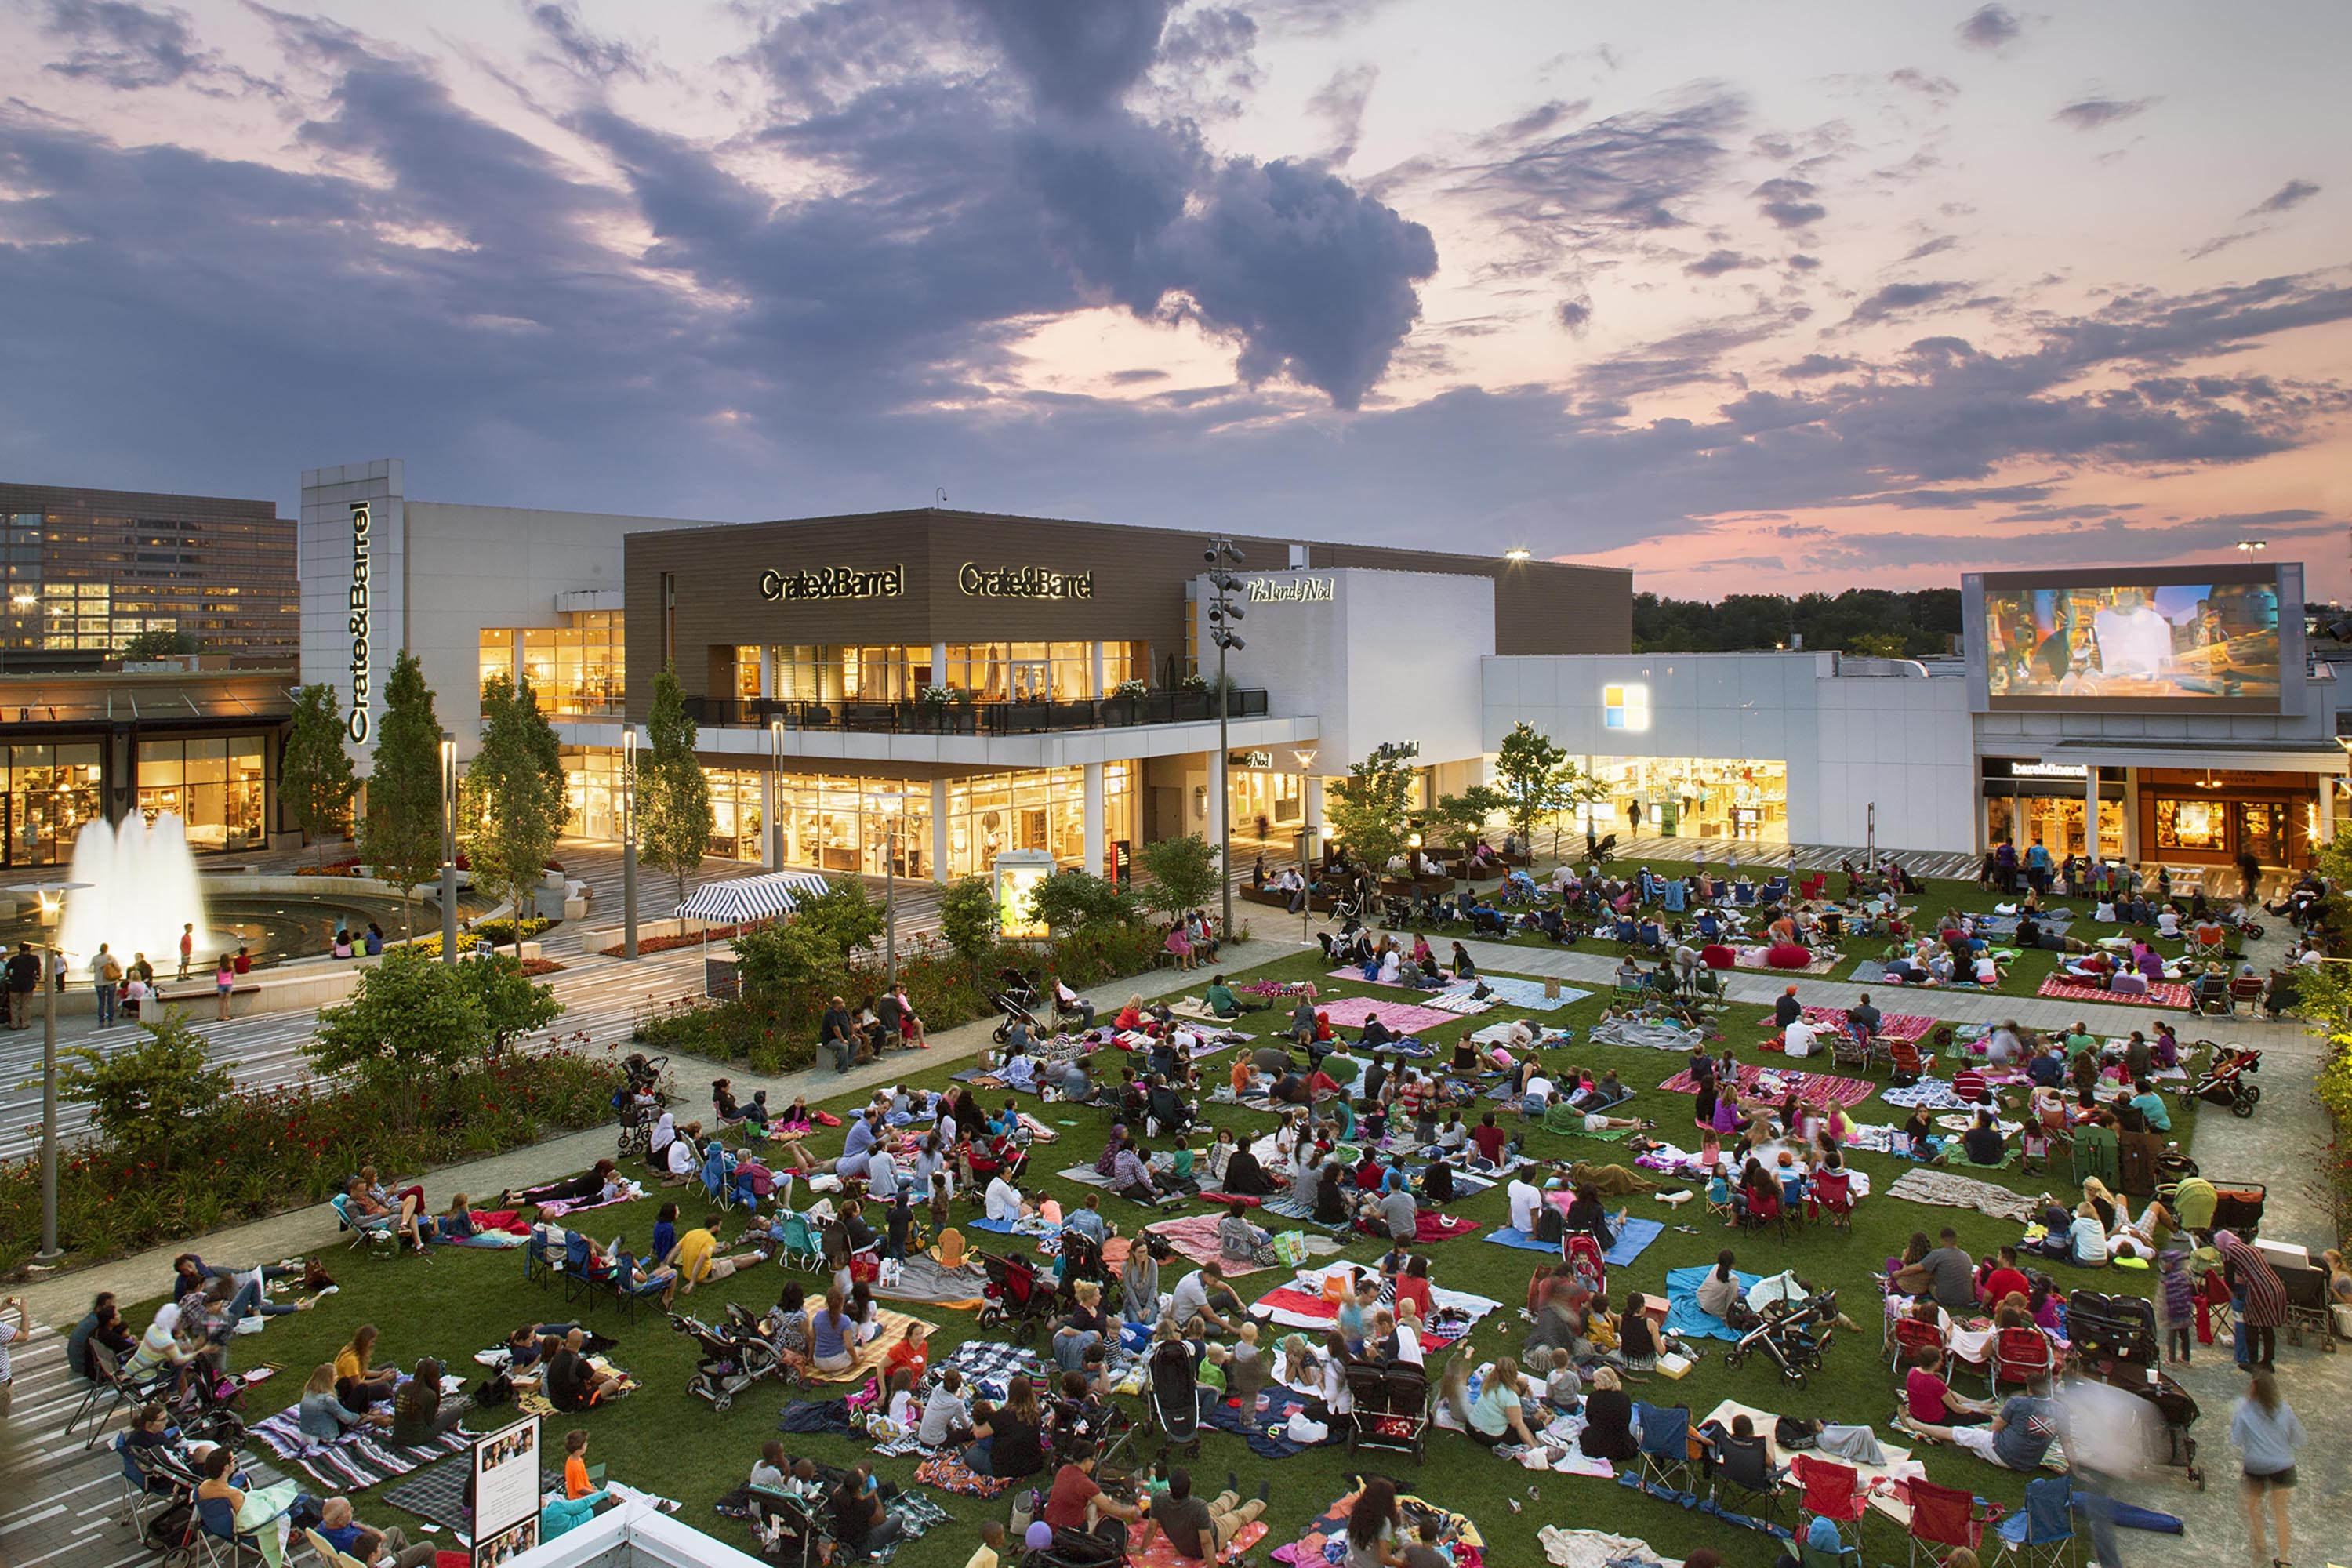 Oakbrook Mall Hours >> Oakbrook Center Discover The Difference Oakbrook Shopping Center